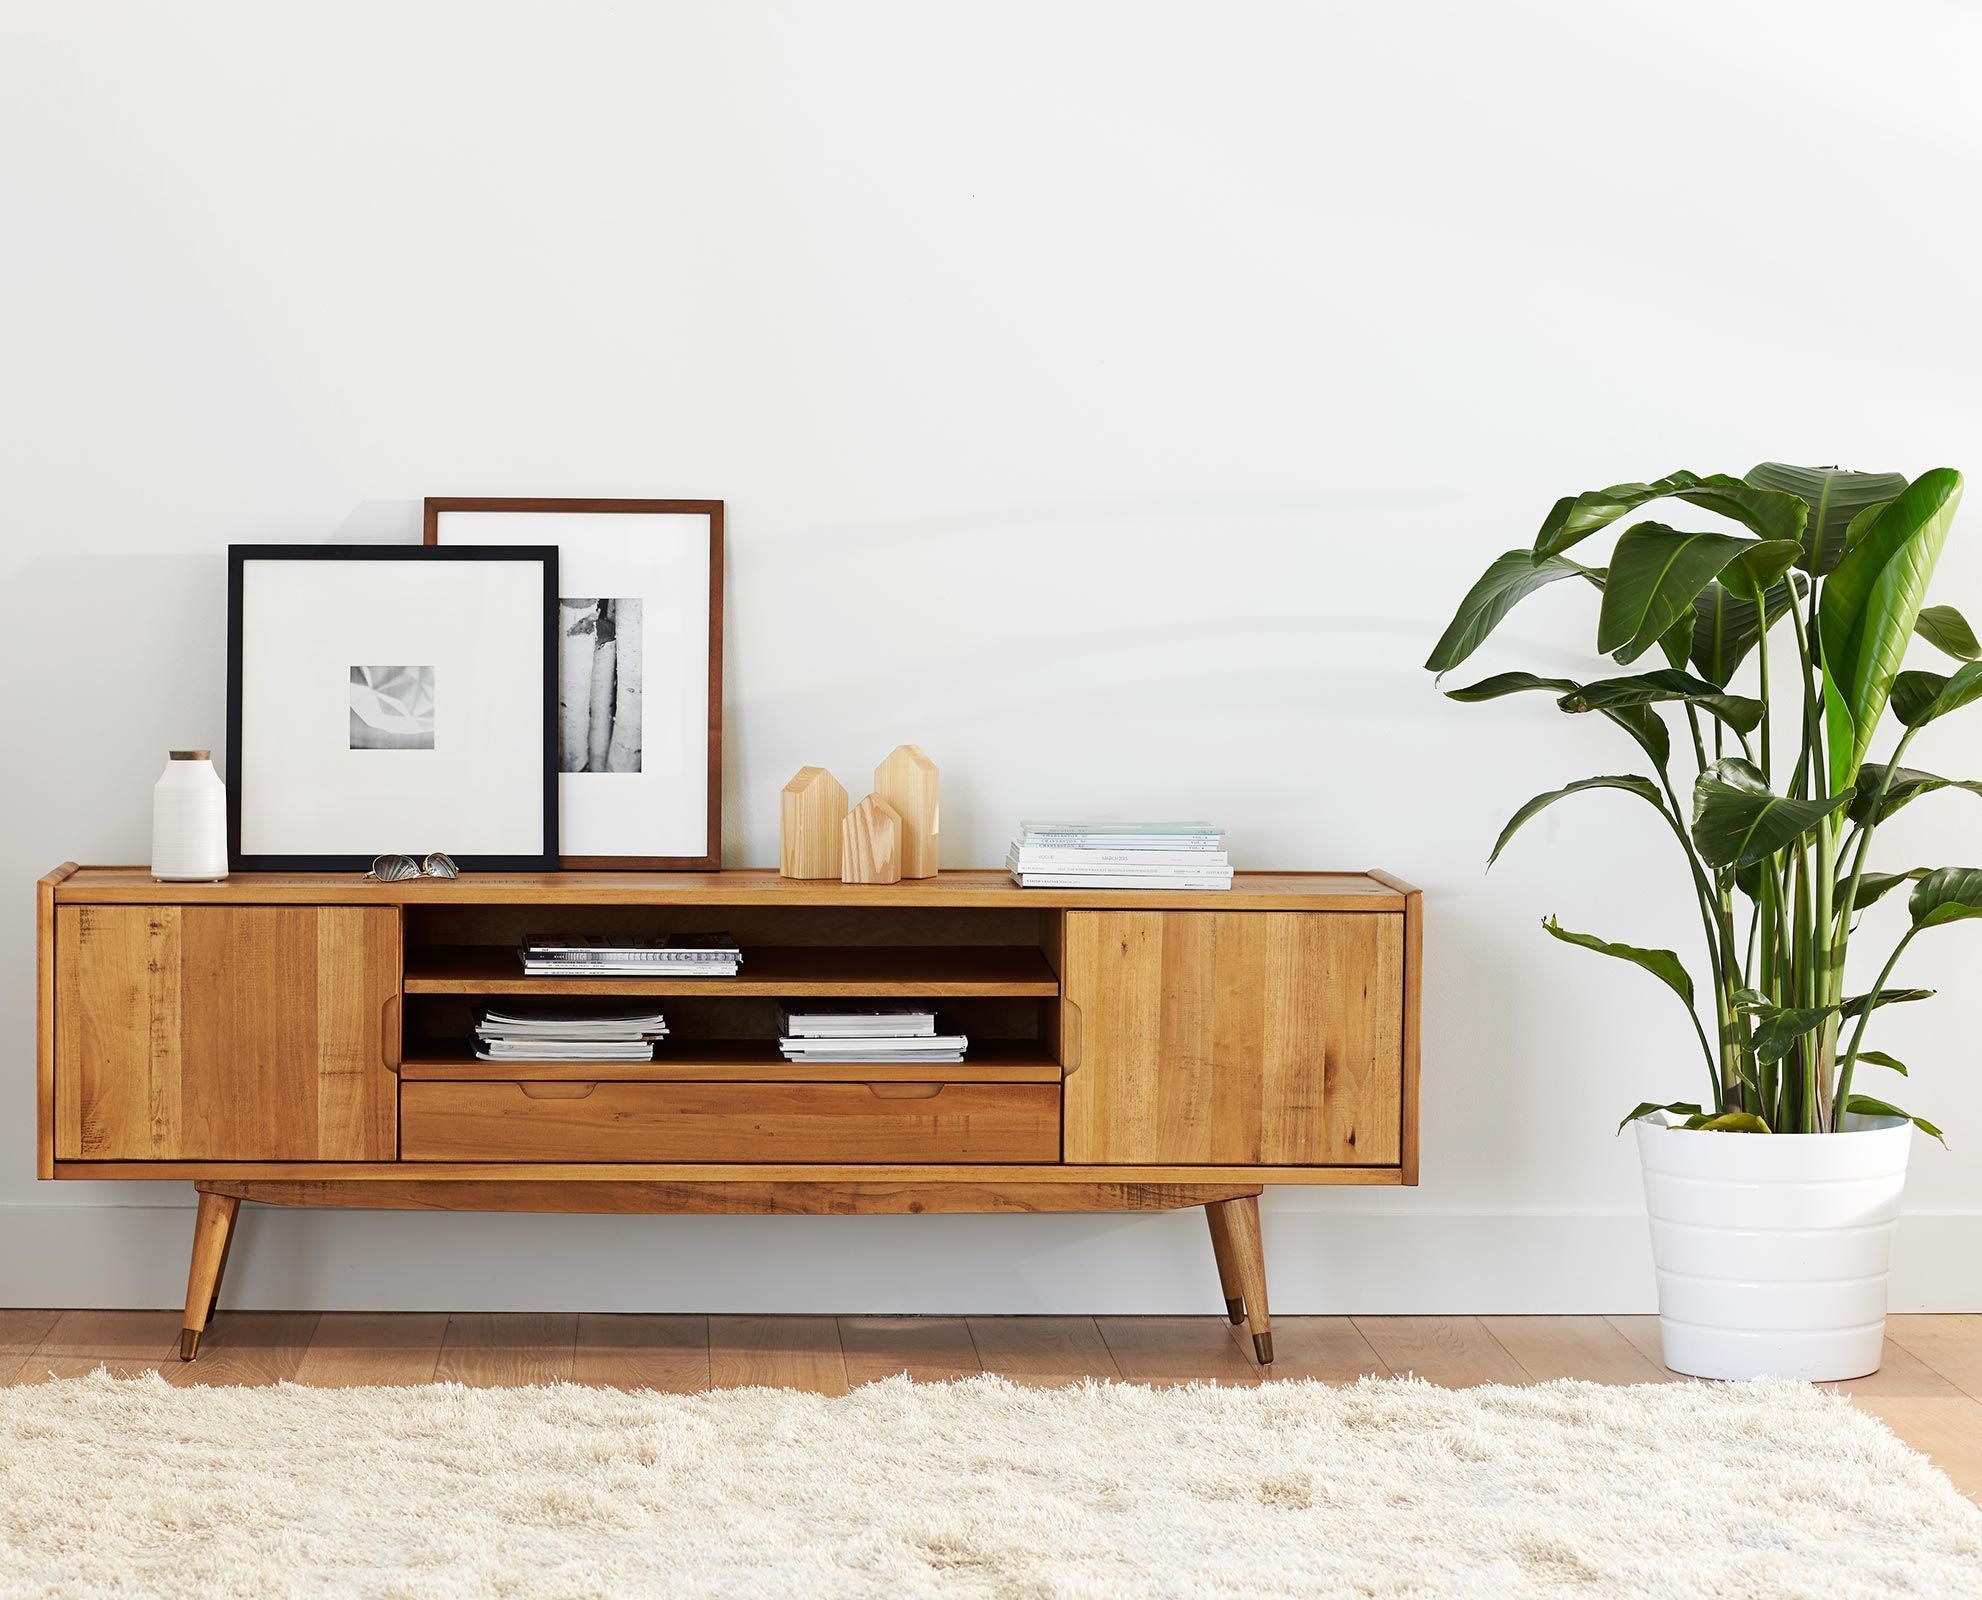 The Bolia Media Stand From Scandinavian Designs The Bolig Media Stand Is Perfect For Incorporating Small Room Design Living Room Diy Living Room Scandinavian